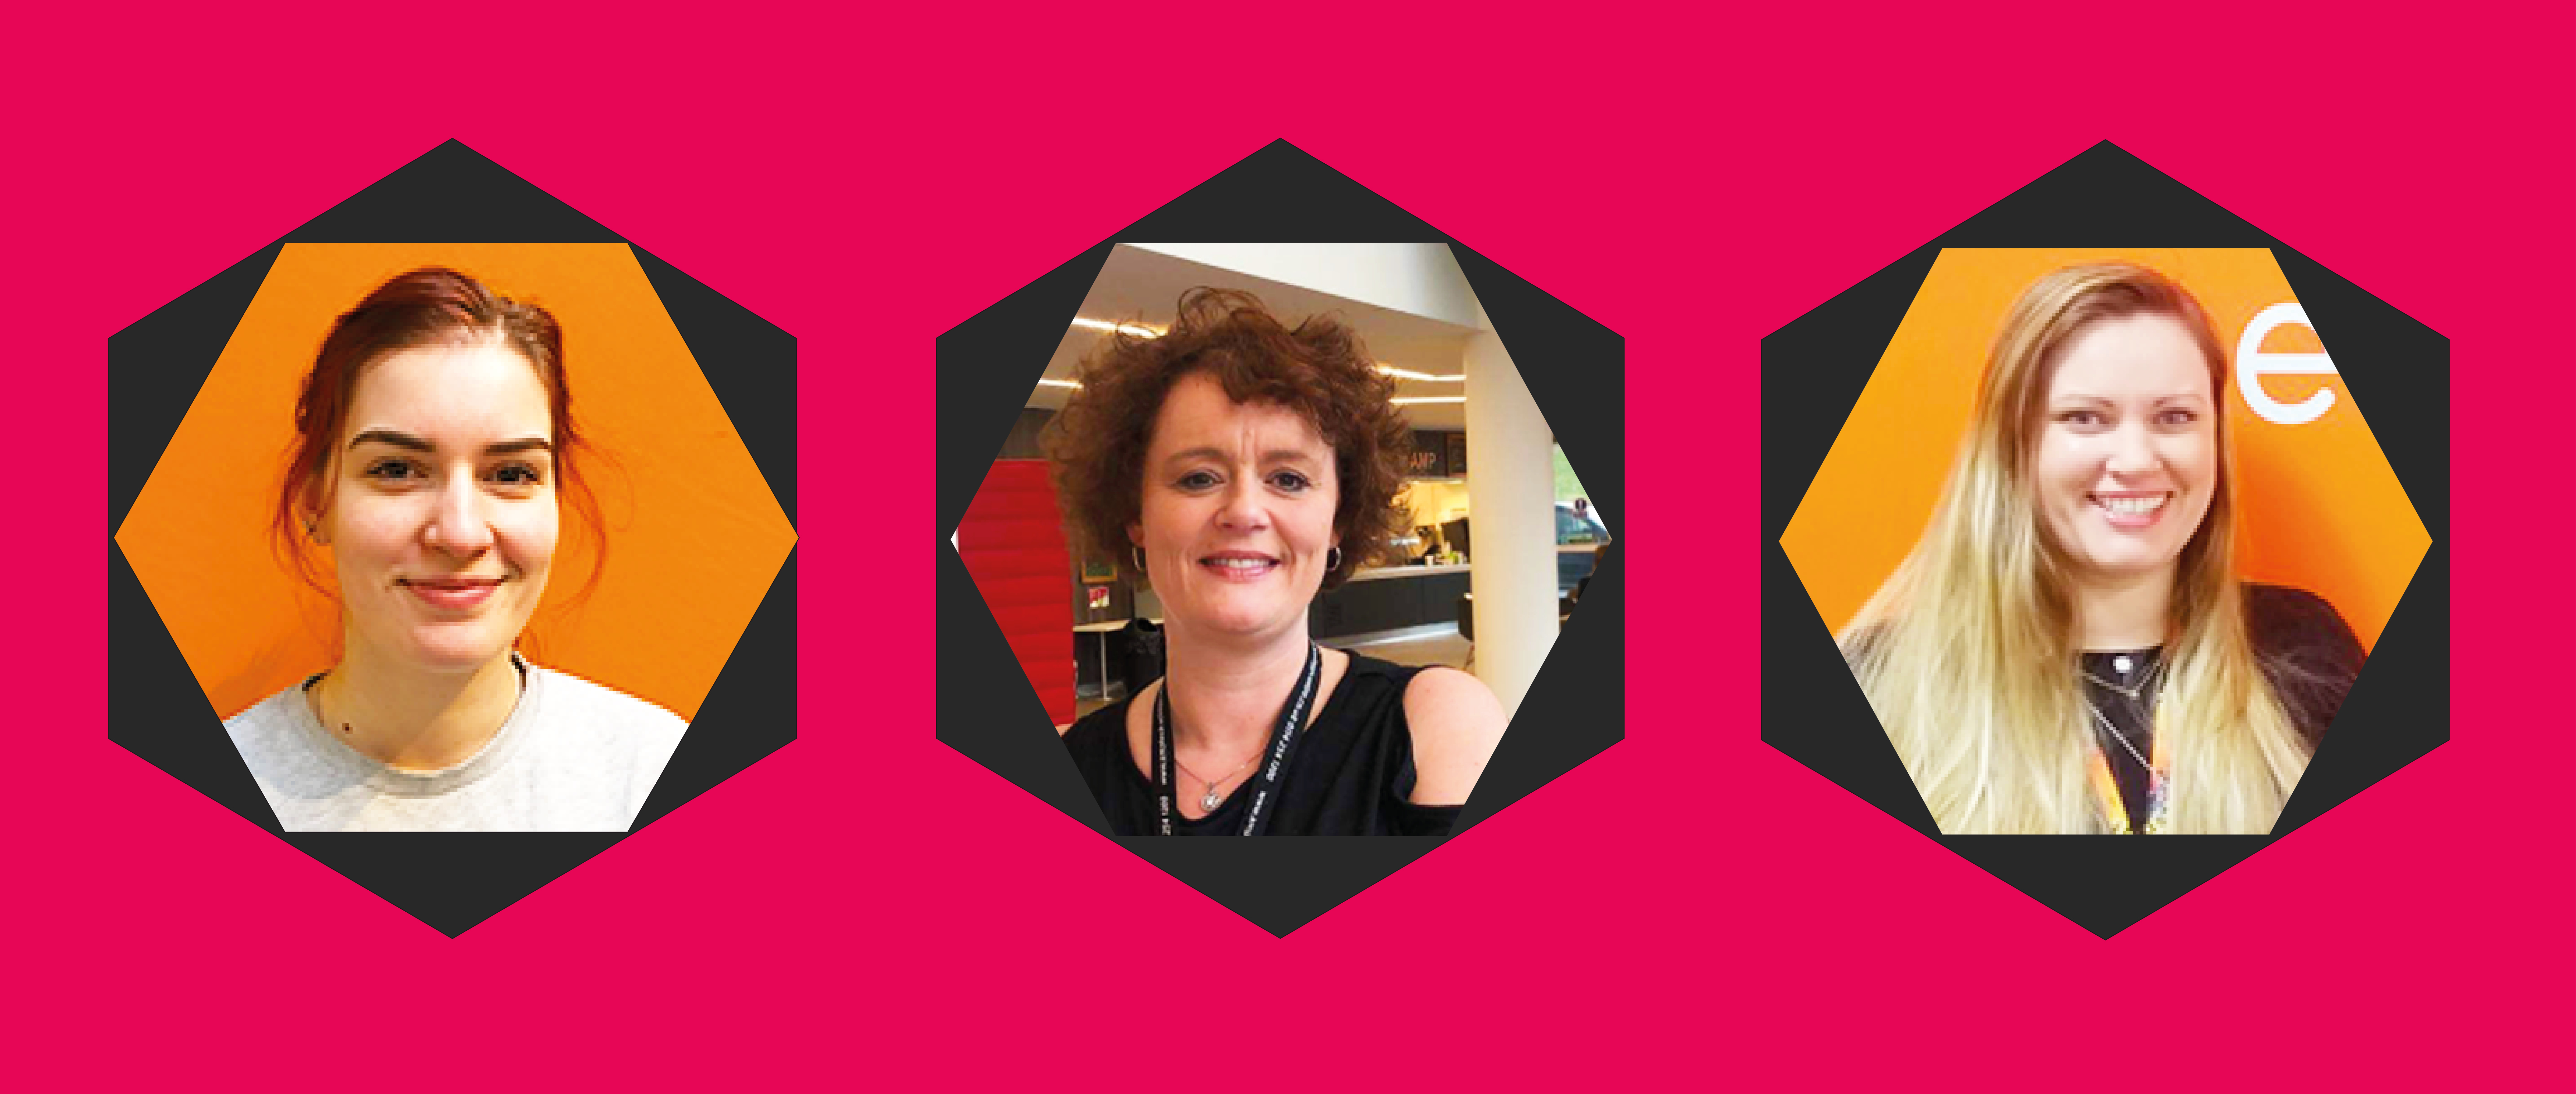 Jenny Carter, Tracey Parker and Amie Simpson Join Creative Space Management